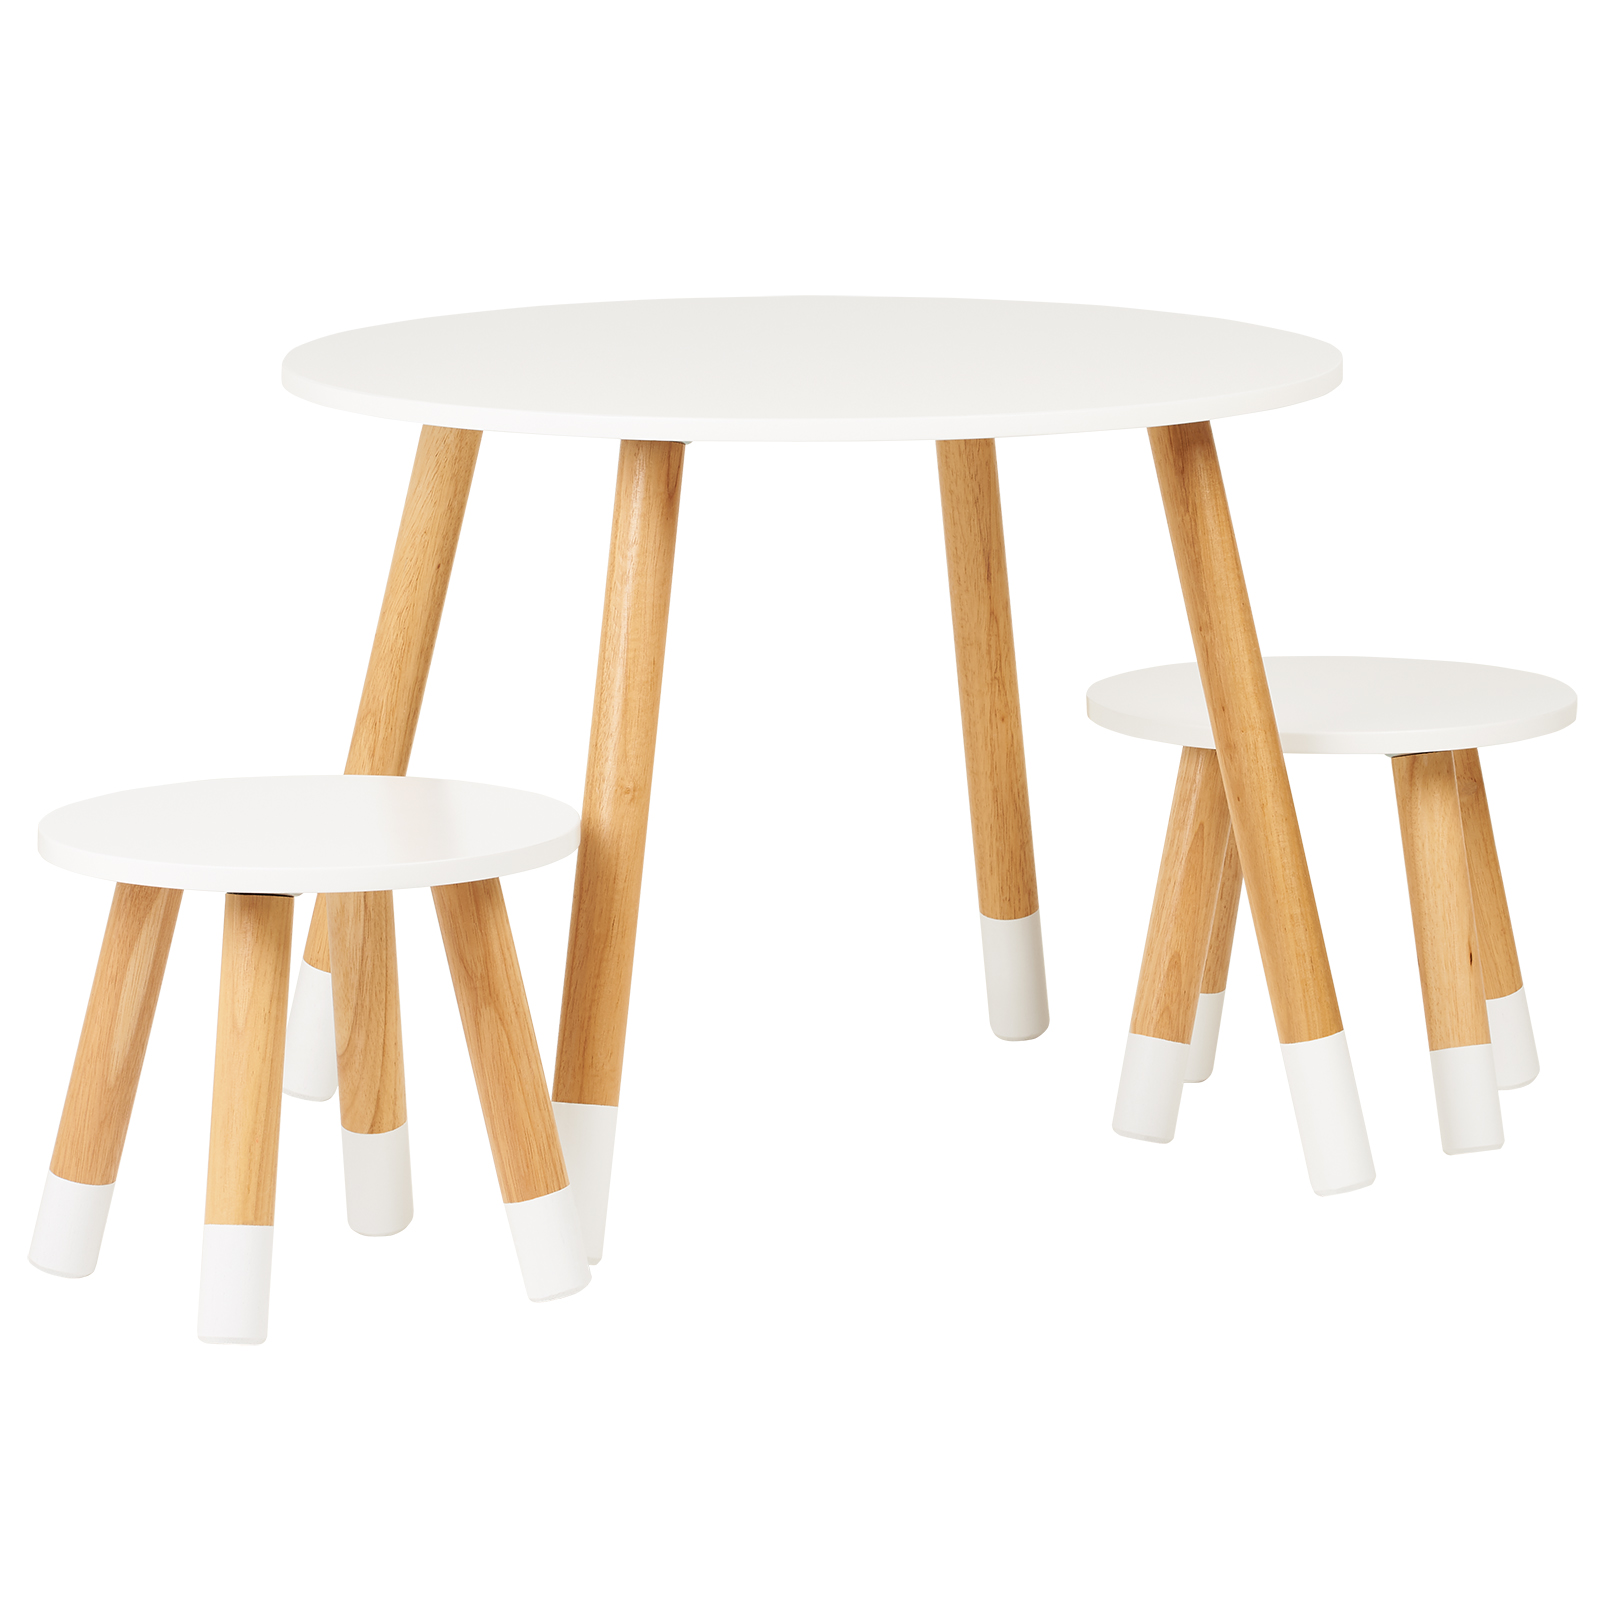 Terrific Details About Hartleys Kids White Round Wooden Table 2 Chairs Set Childrens Bedroom Playroom Interior Design Ideas Jittwwsoteloinfo